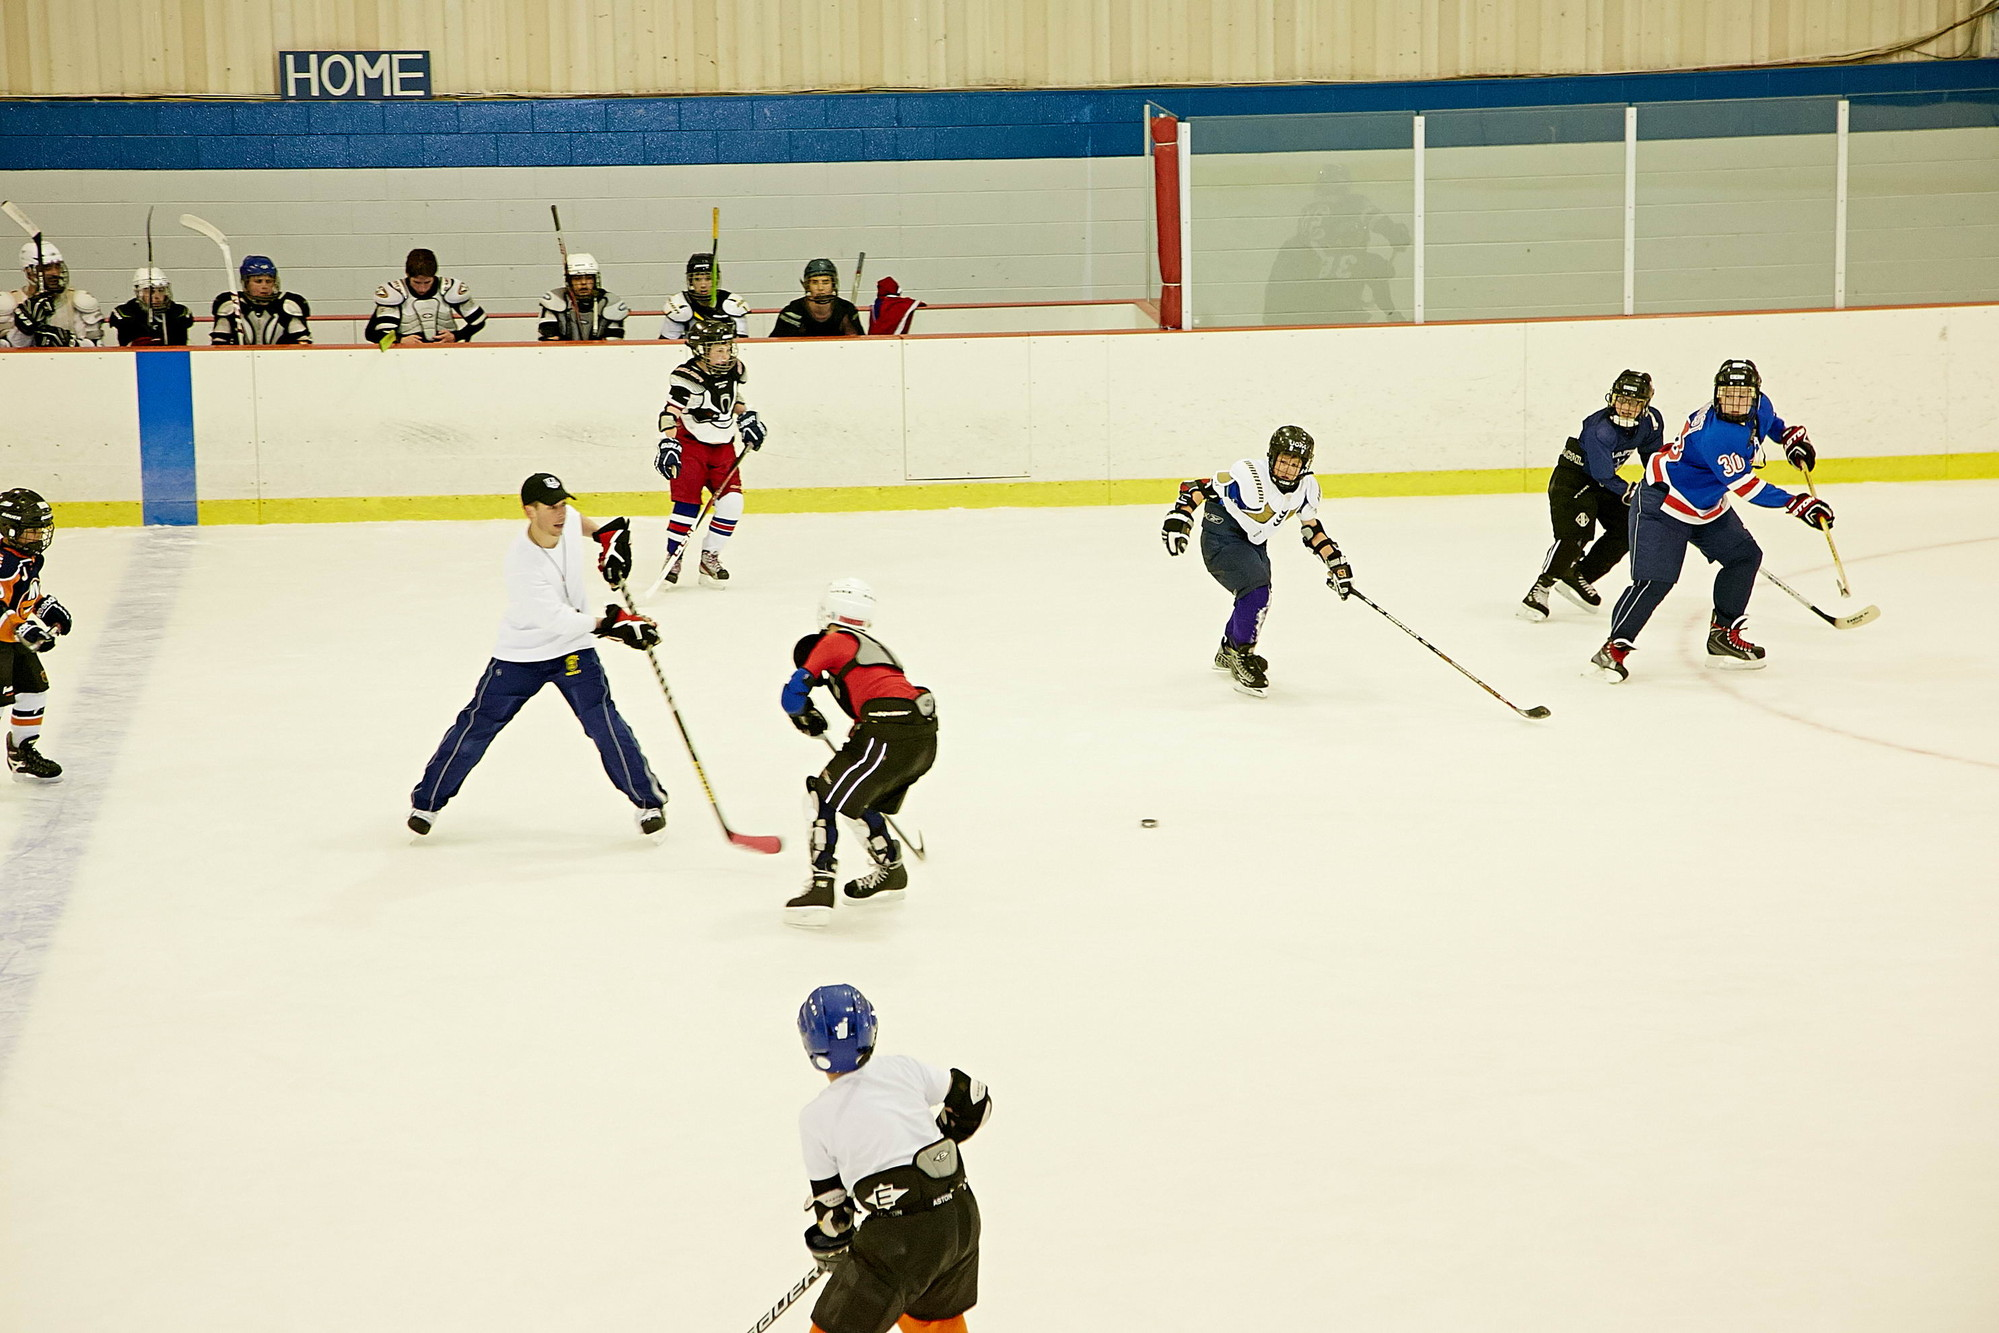 The Hebrew Hockey League provides instruction and competition to a range of players who are schooled in technique on the ice and respect for their opponents.